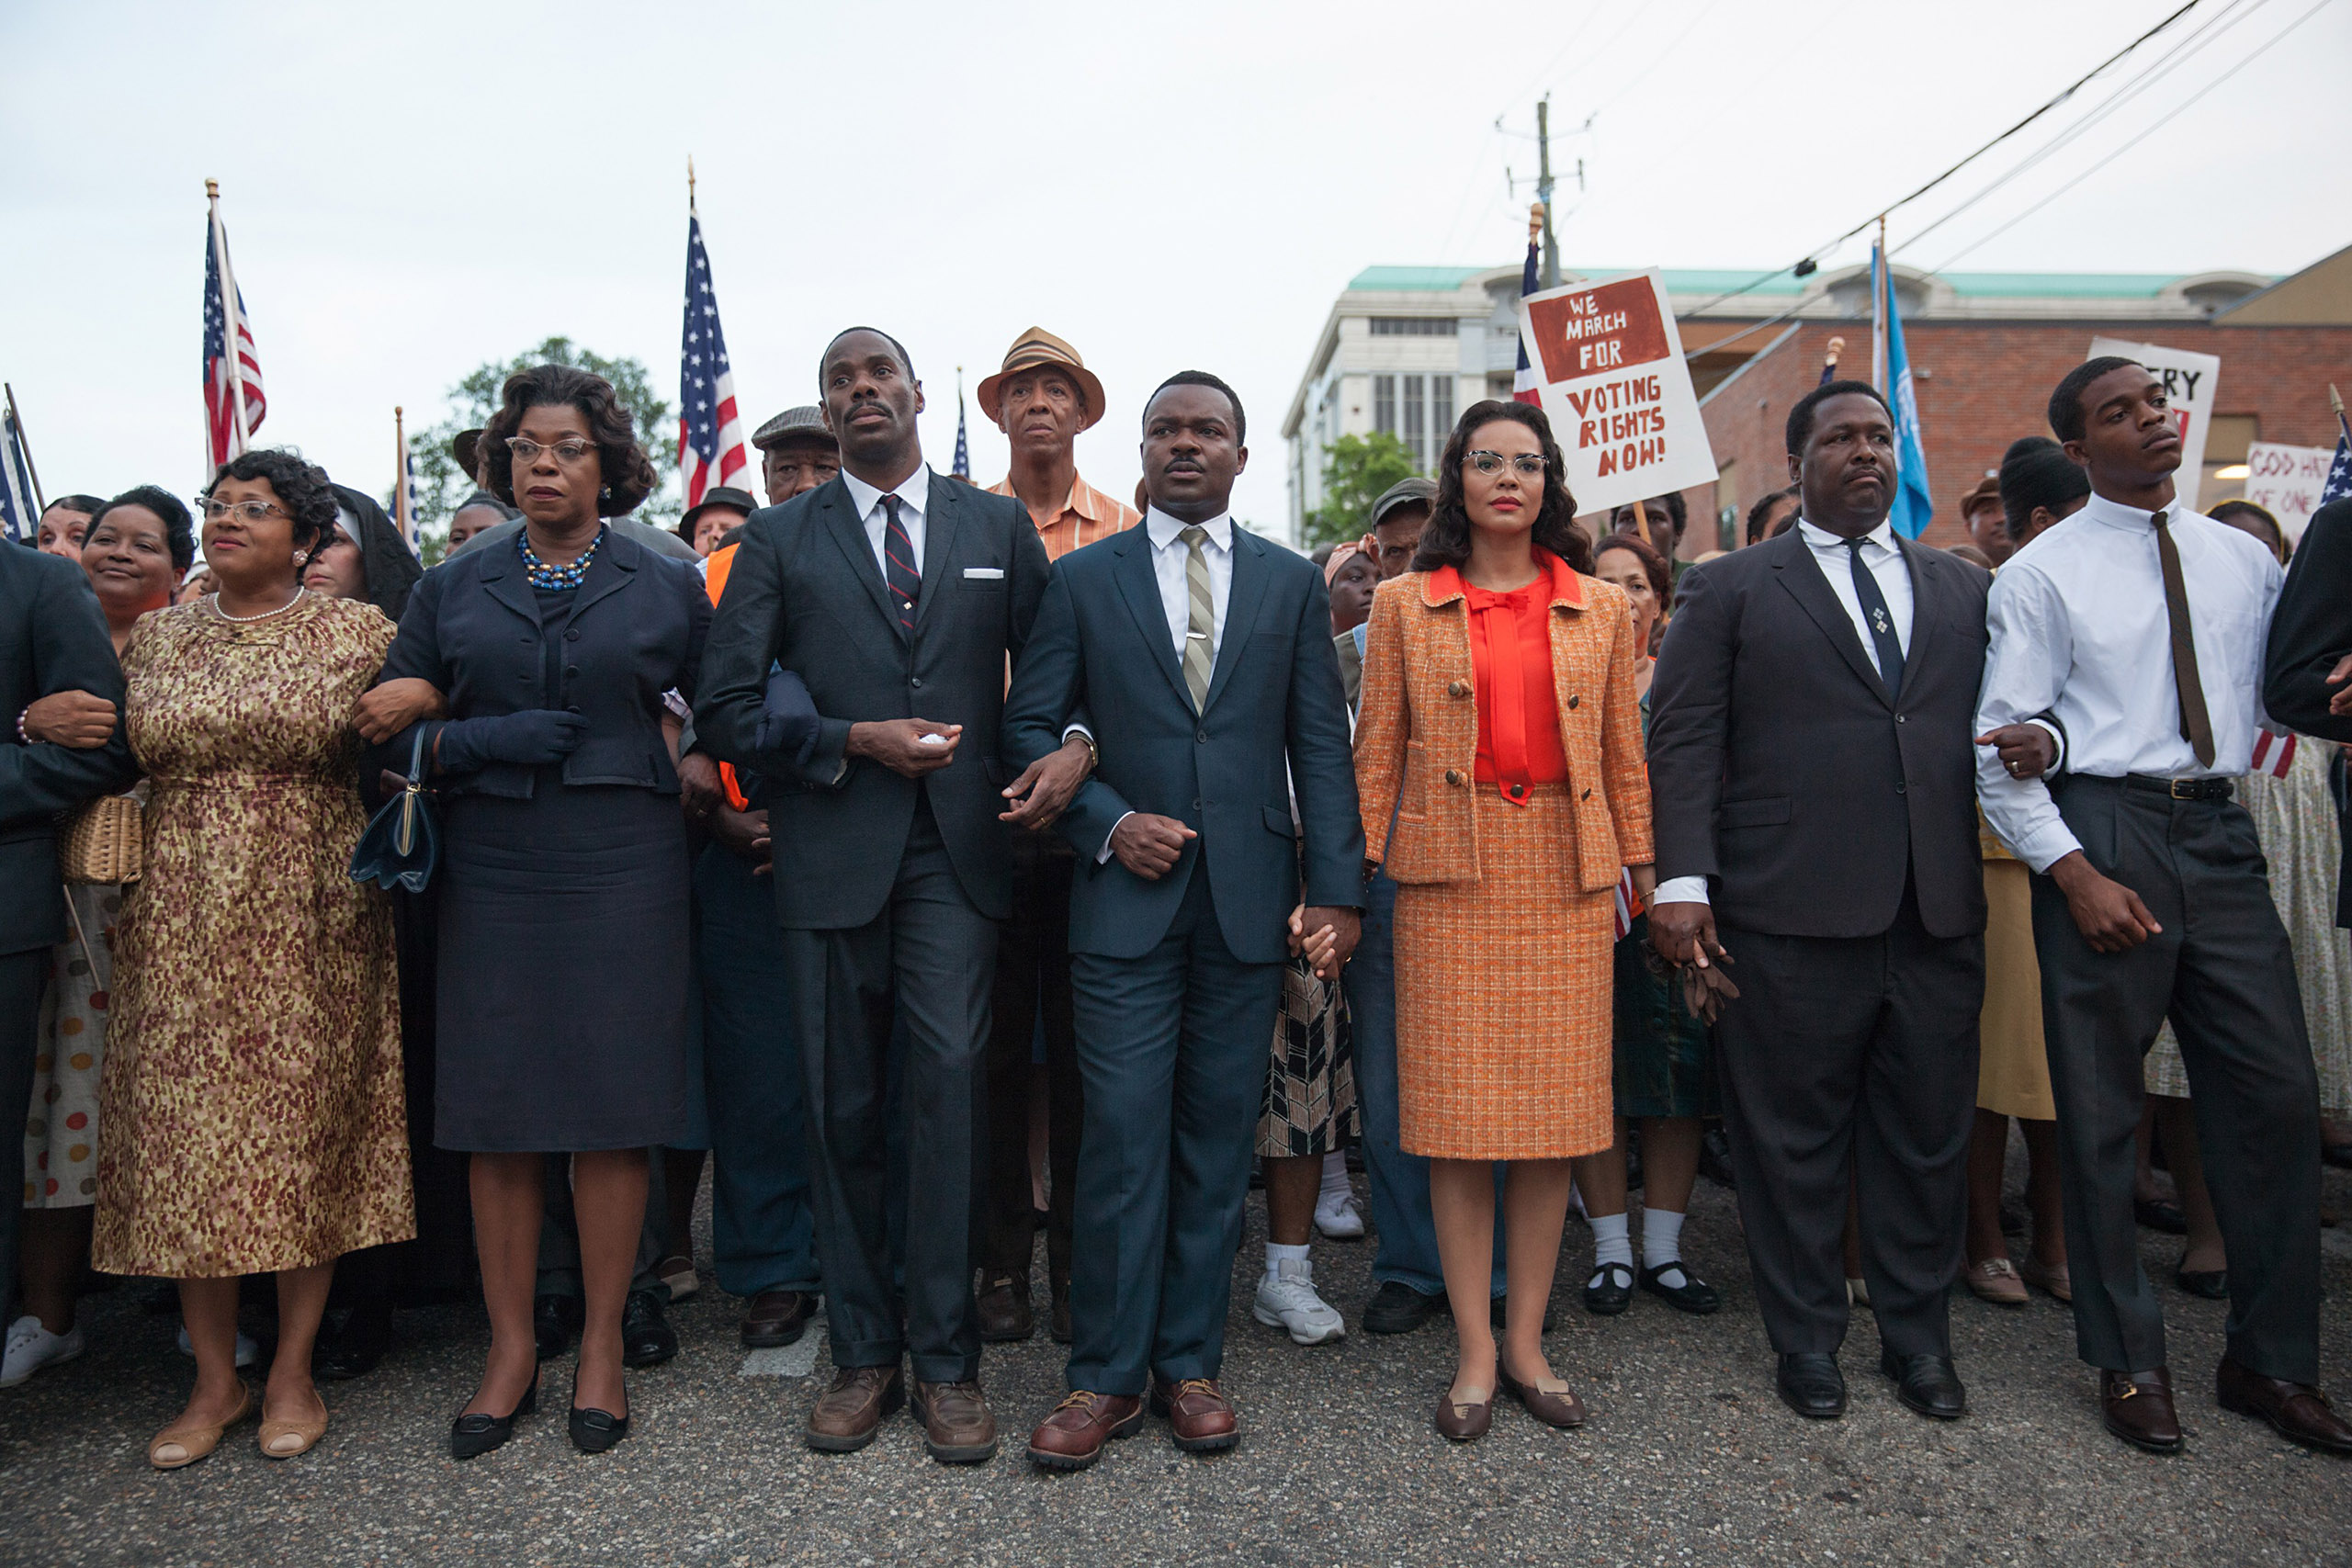 From the set of <i>Selma</i>.